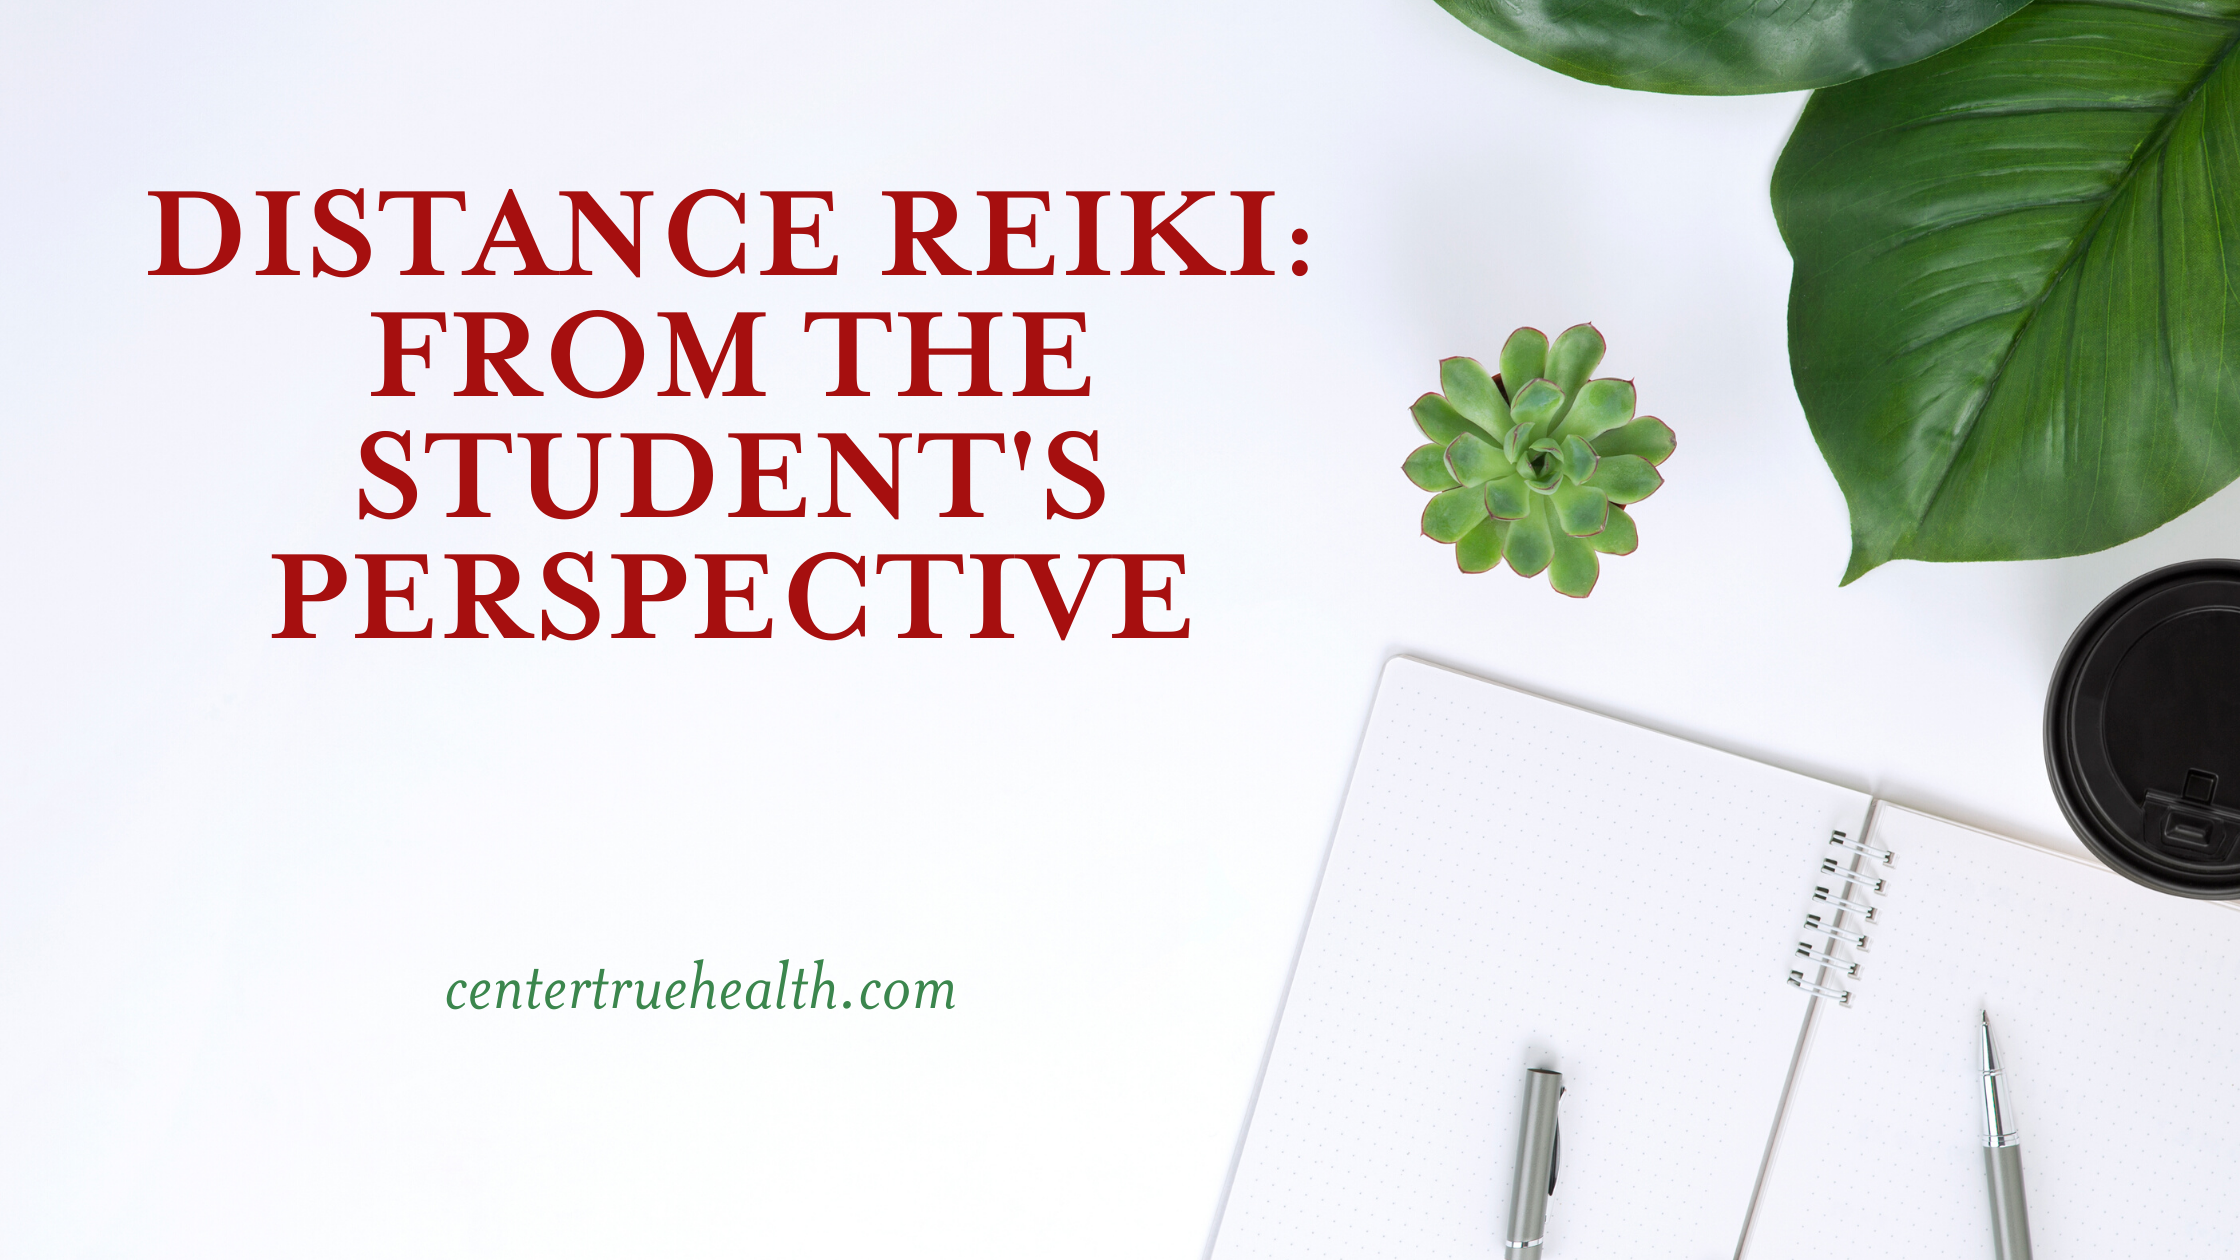 Distance Reiki: From the Student's Perspective